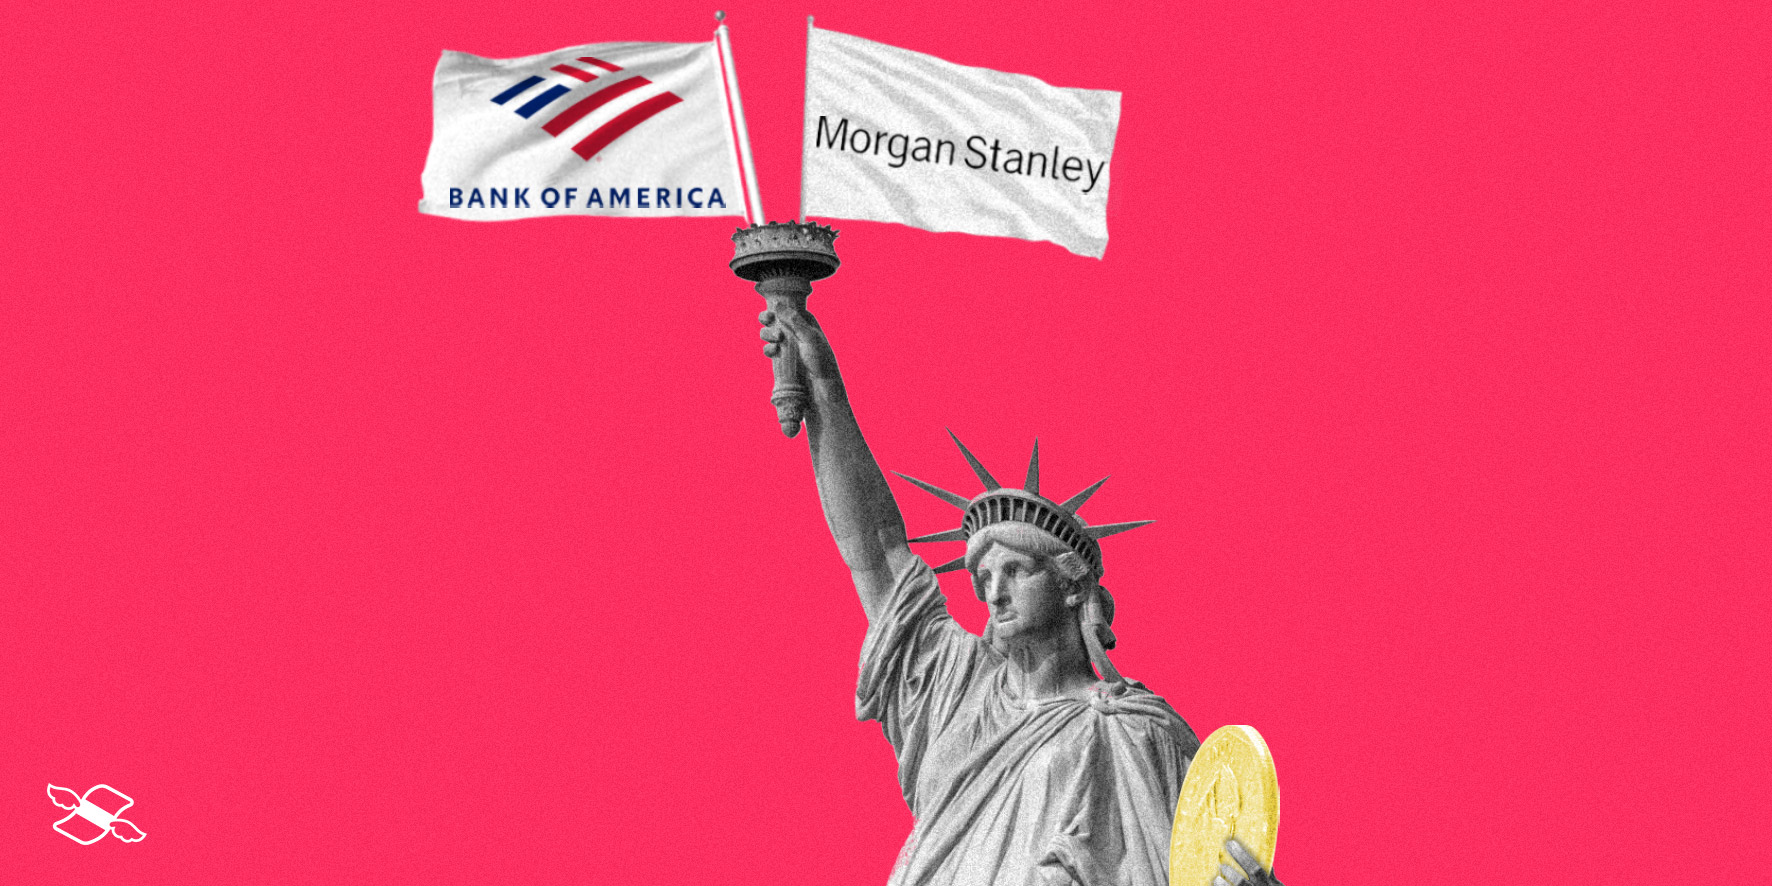 Morgan Stanley results